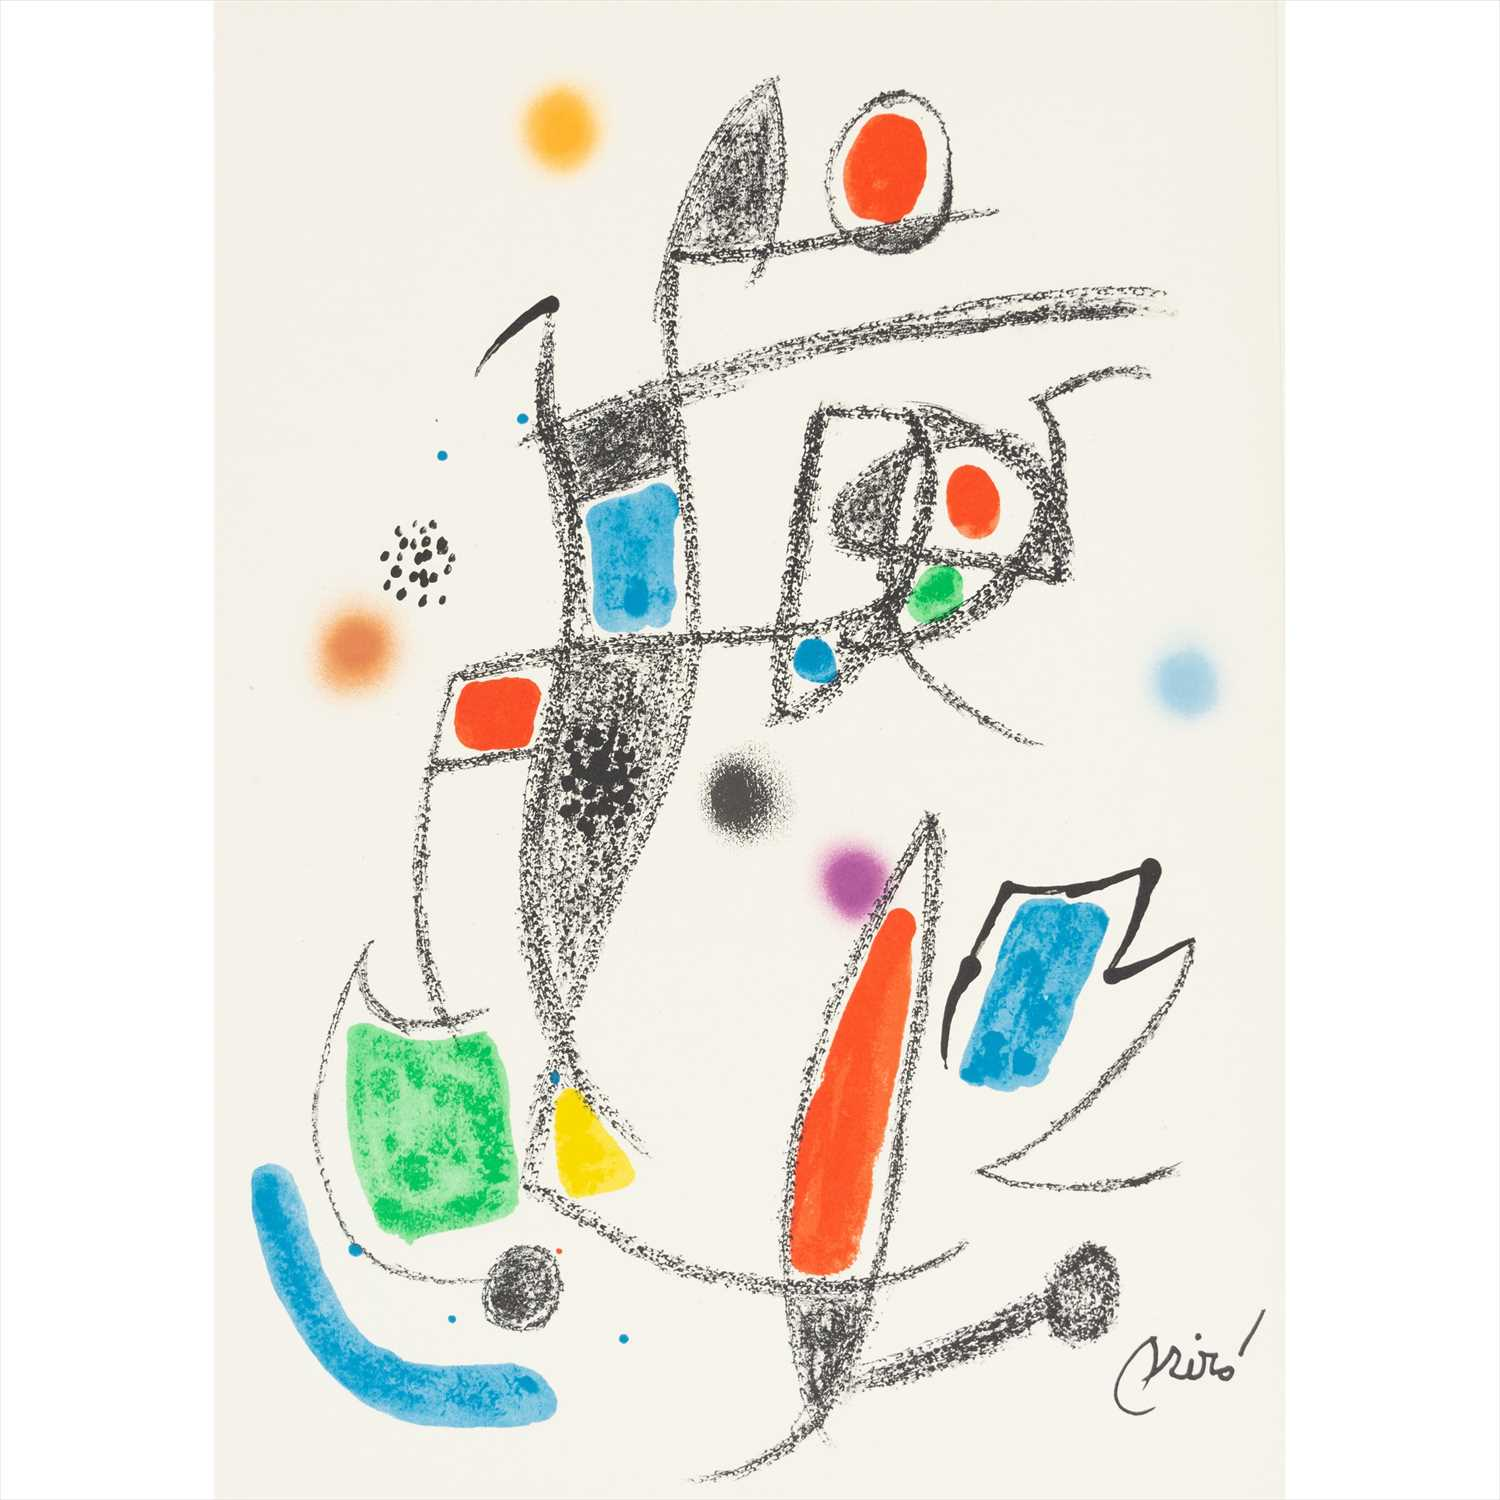 Lot 251-Joan Miró